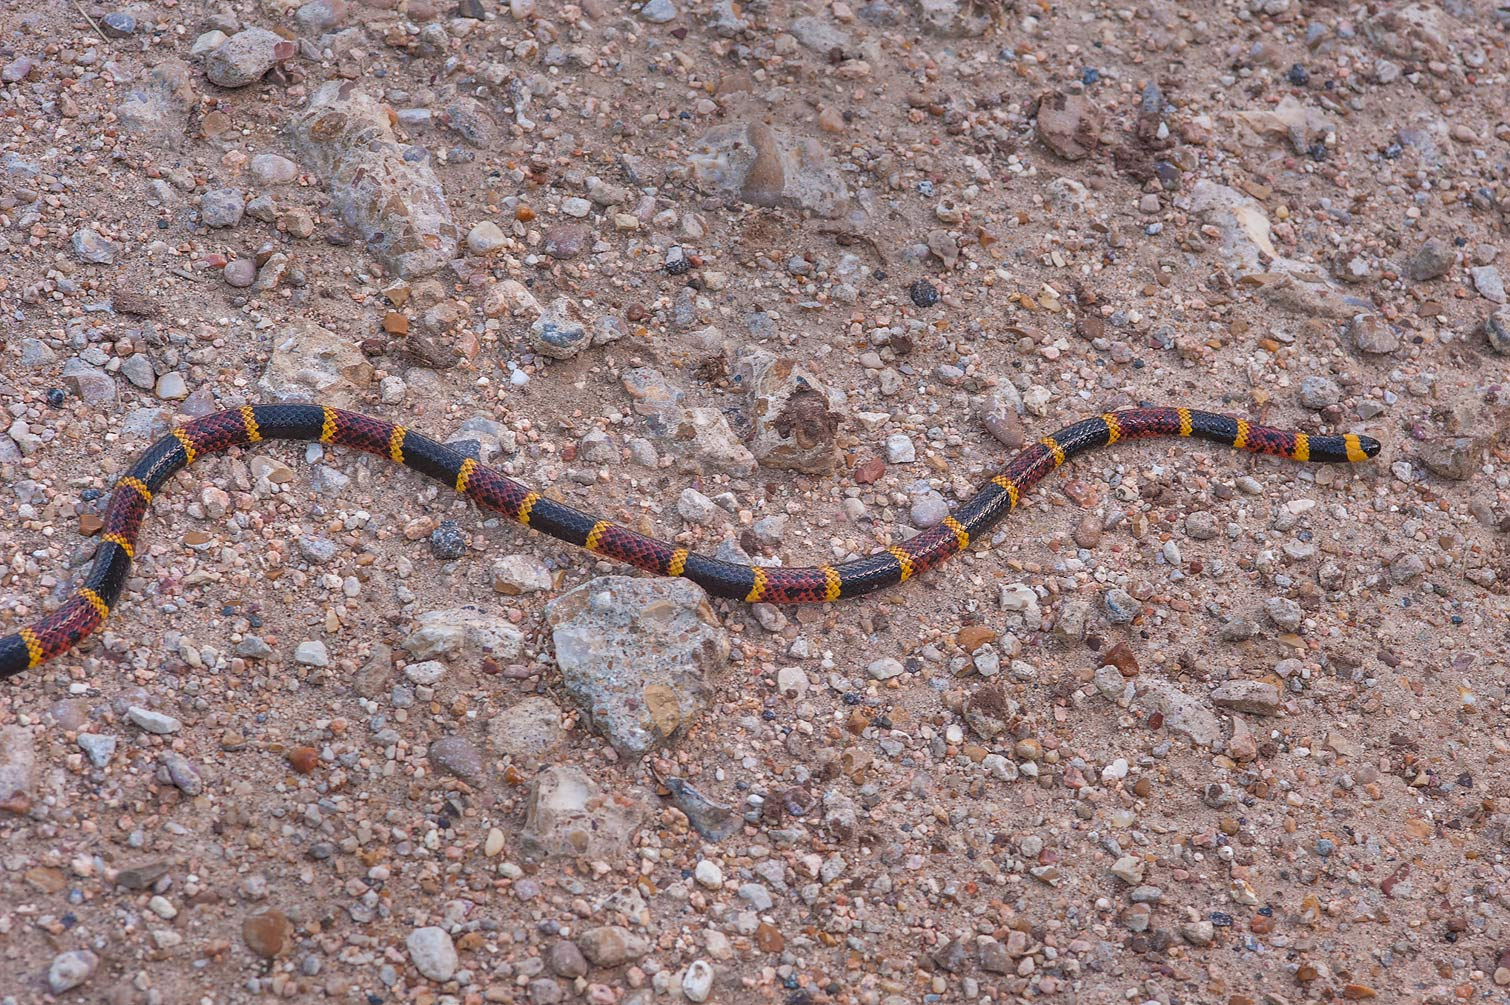 Coral snake near a pond in Washington-on-the-Brazos State Historic Site. Washington, Texas